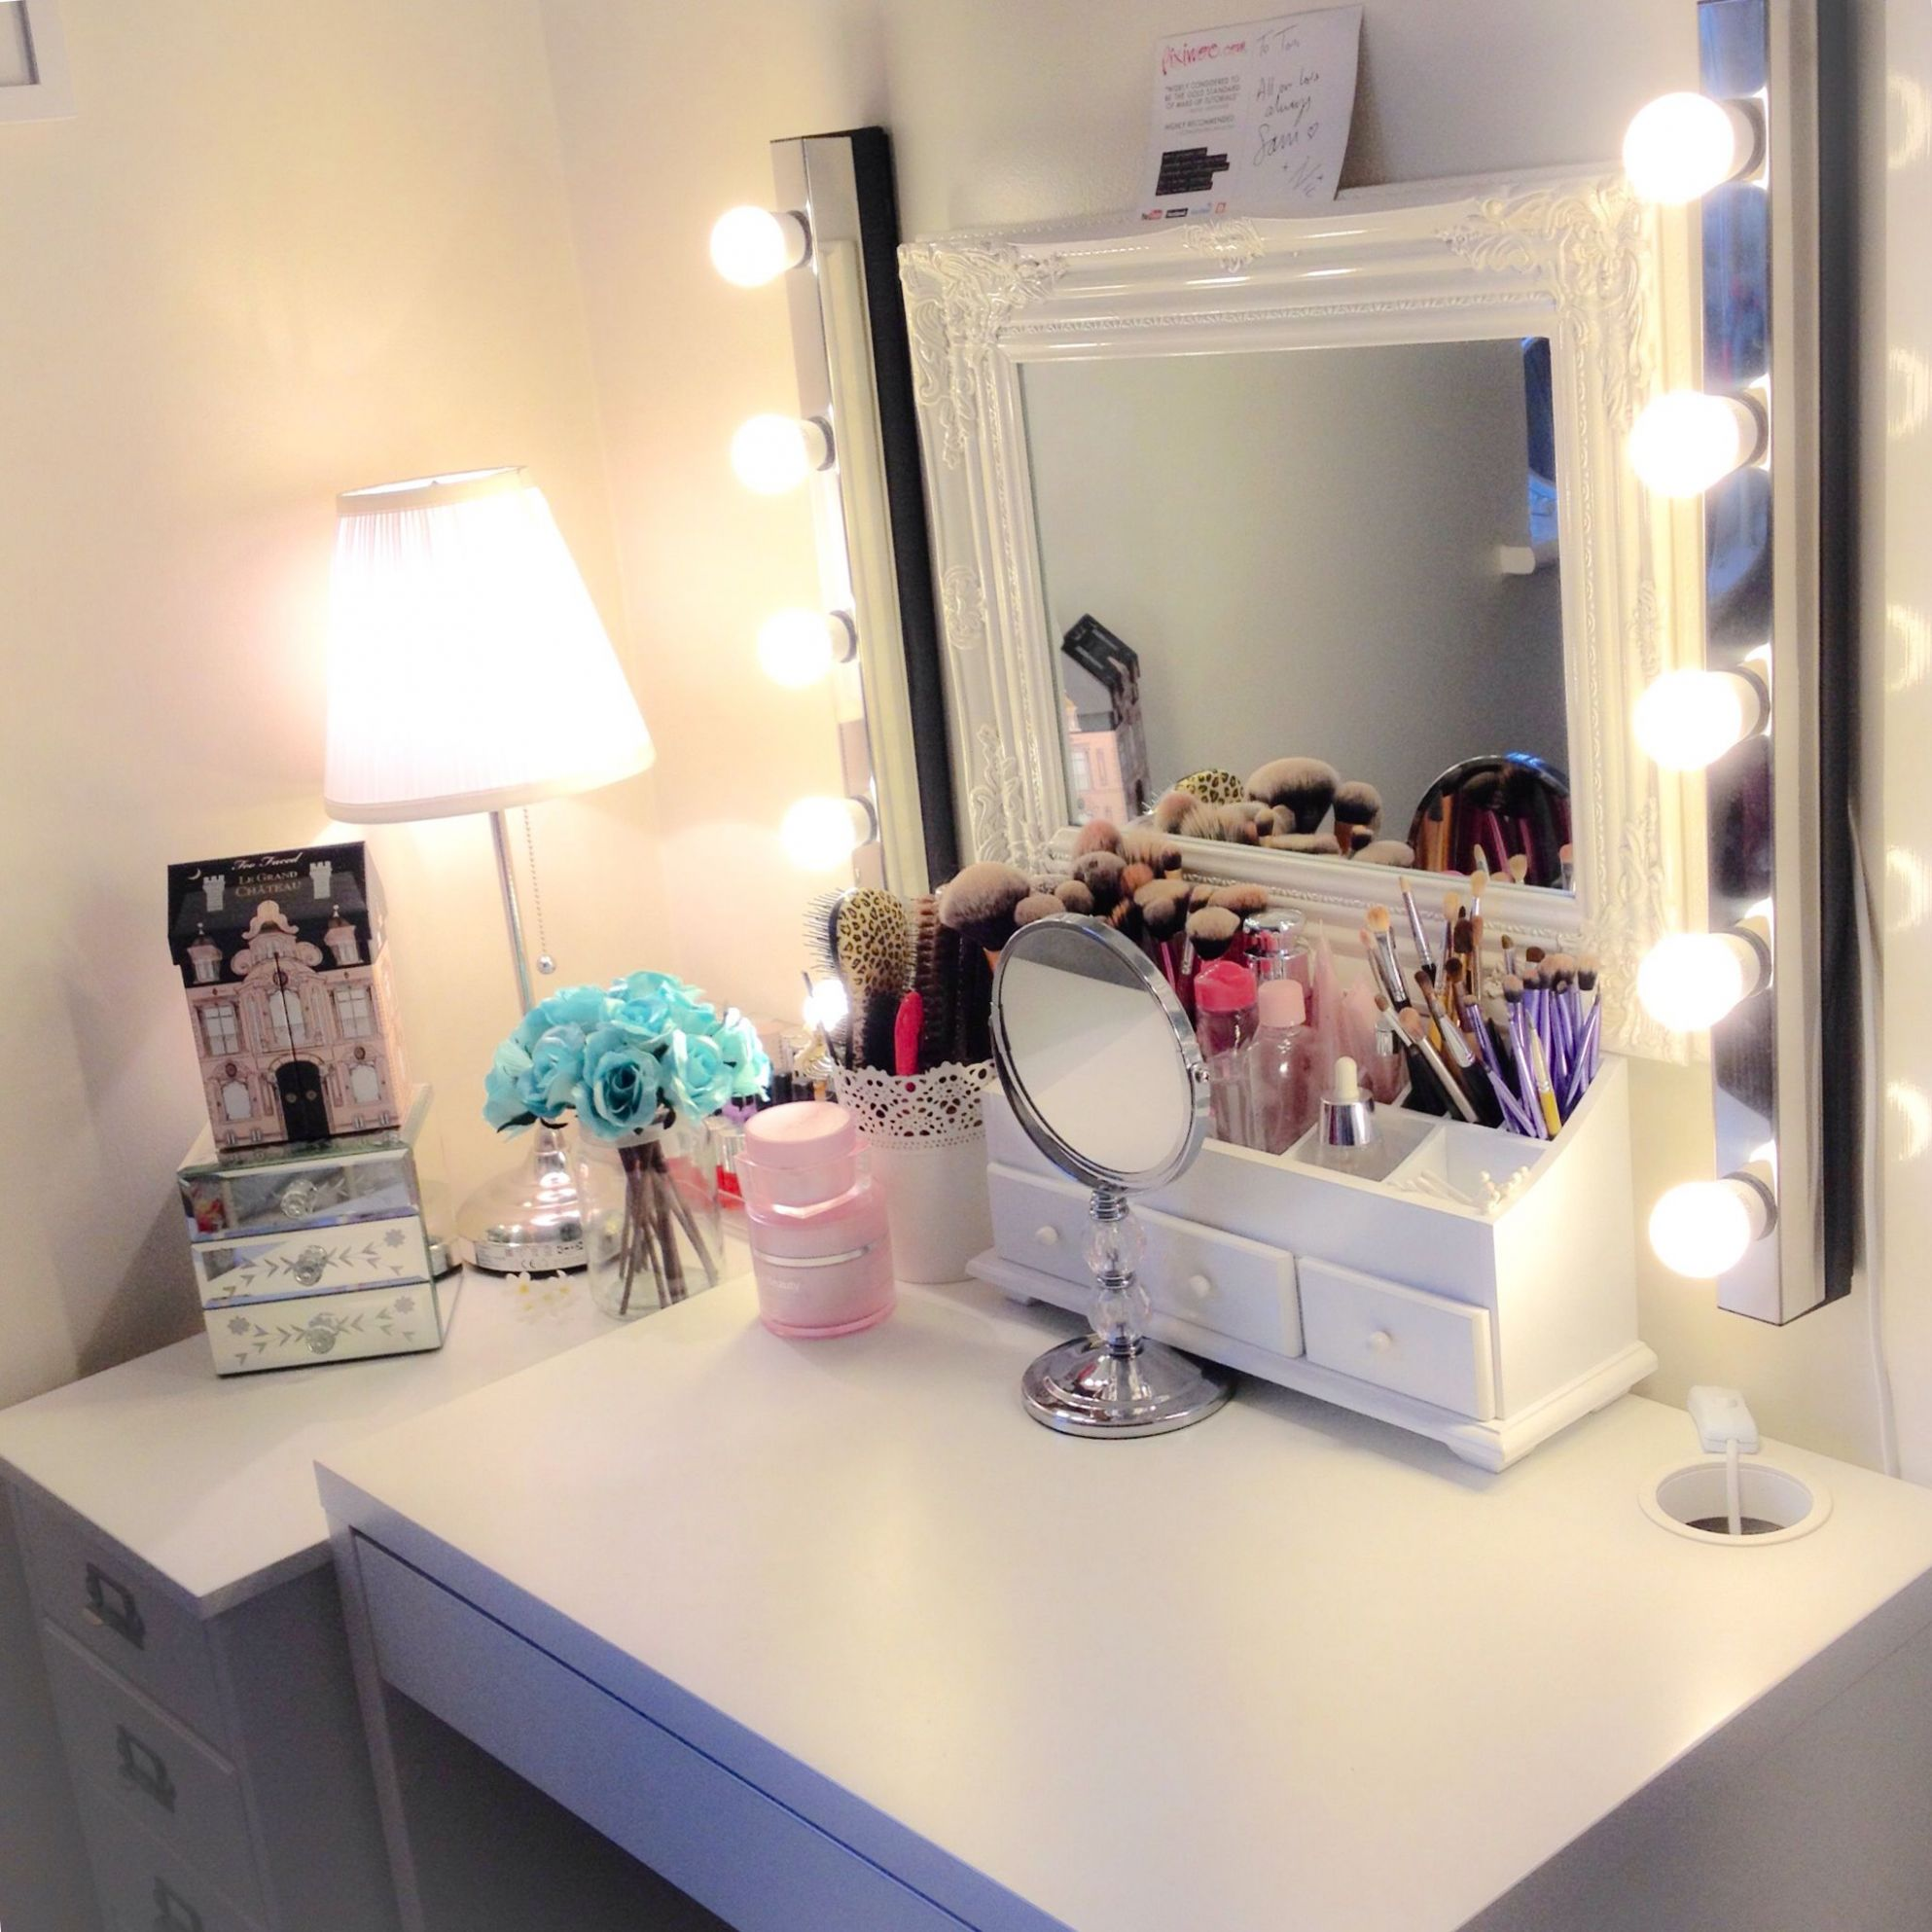 Makeup station: Micke Desk by IKEA | Ikea girls room, Vanity decor ..